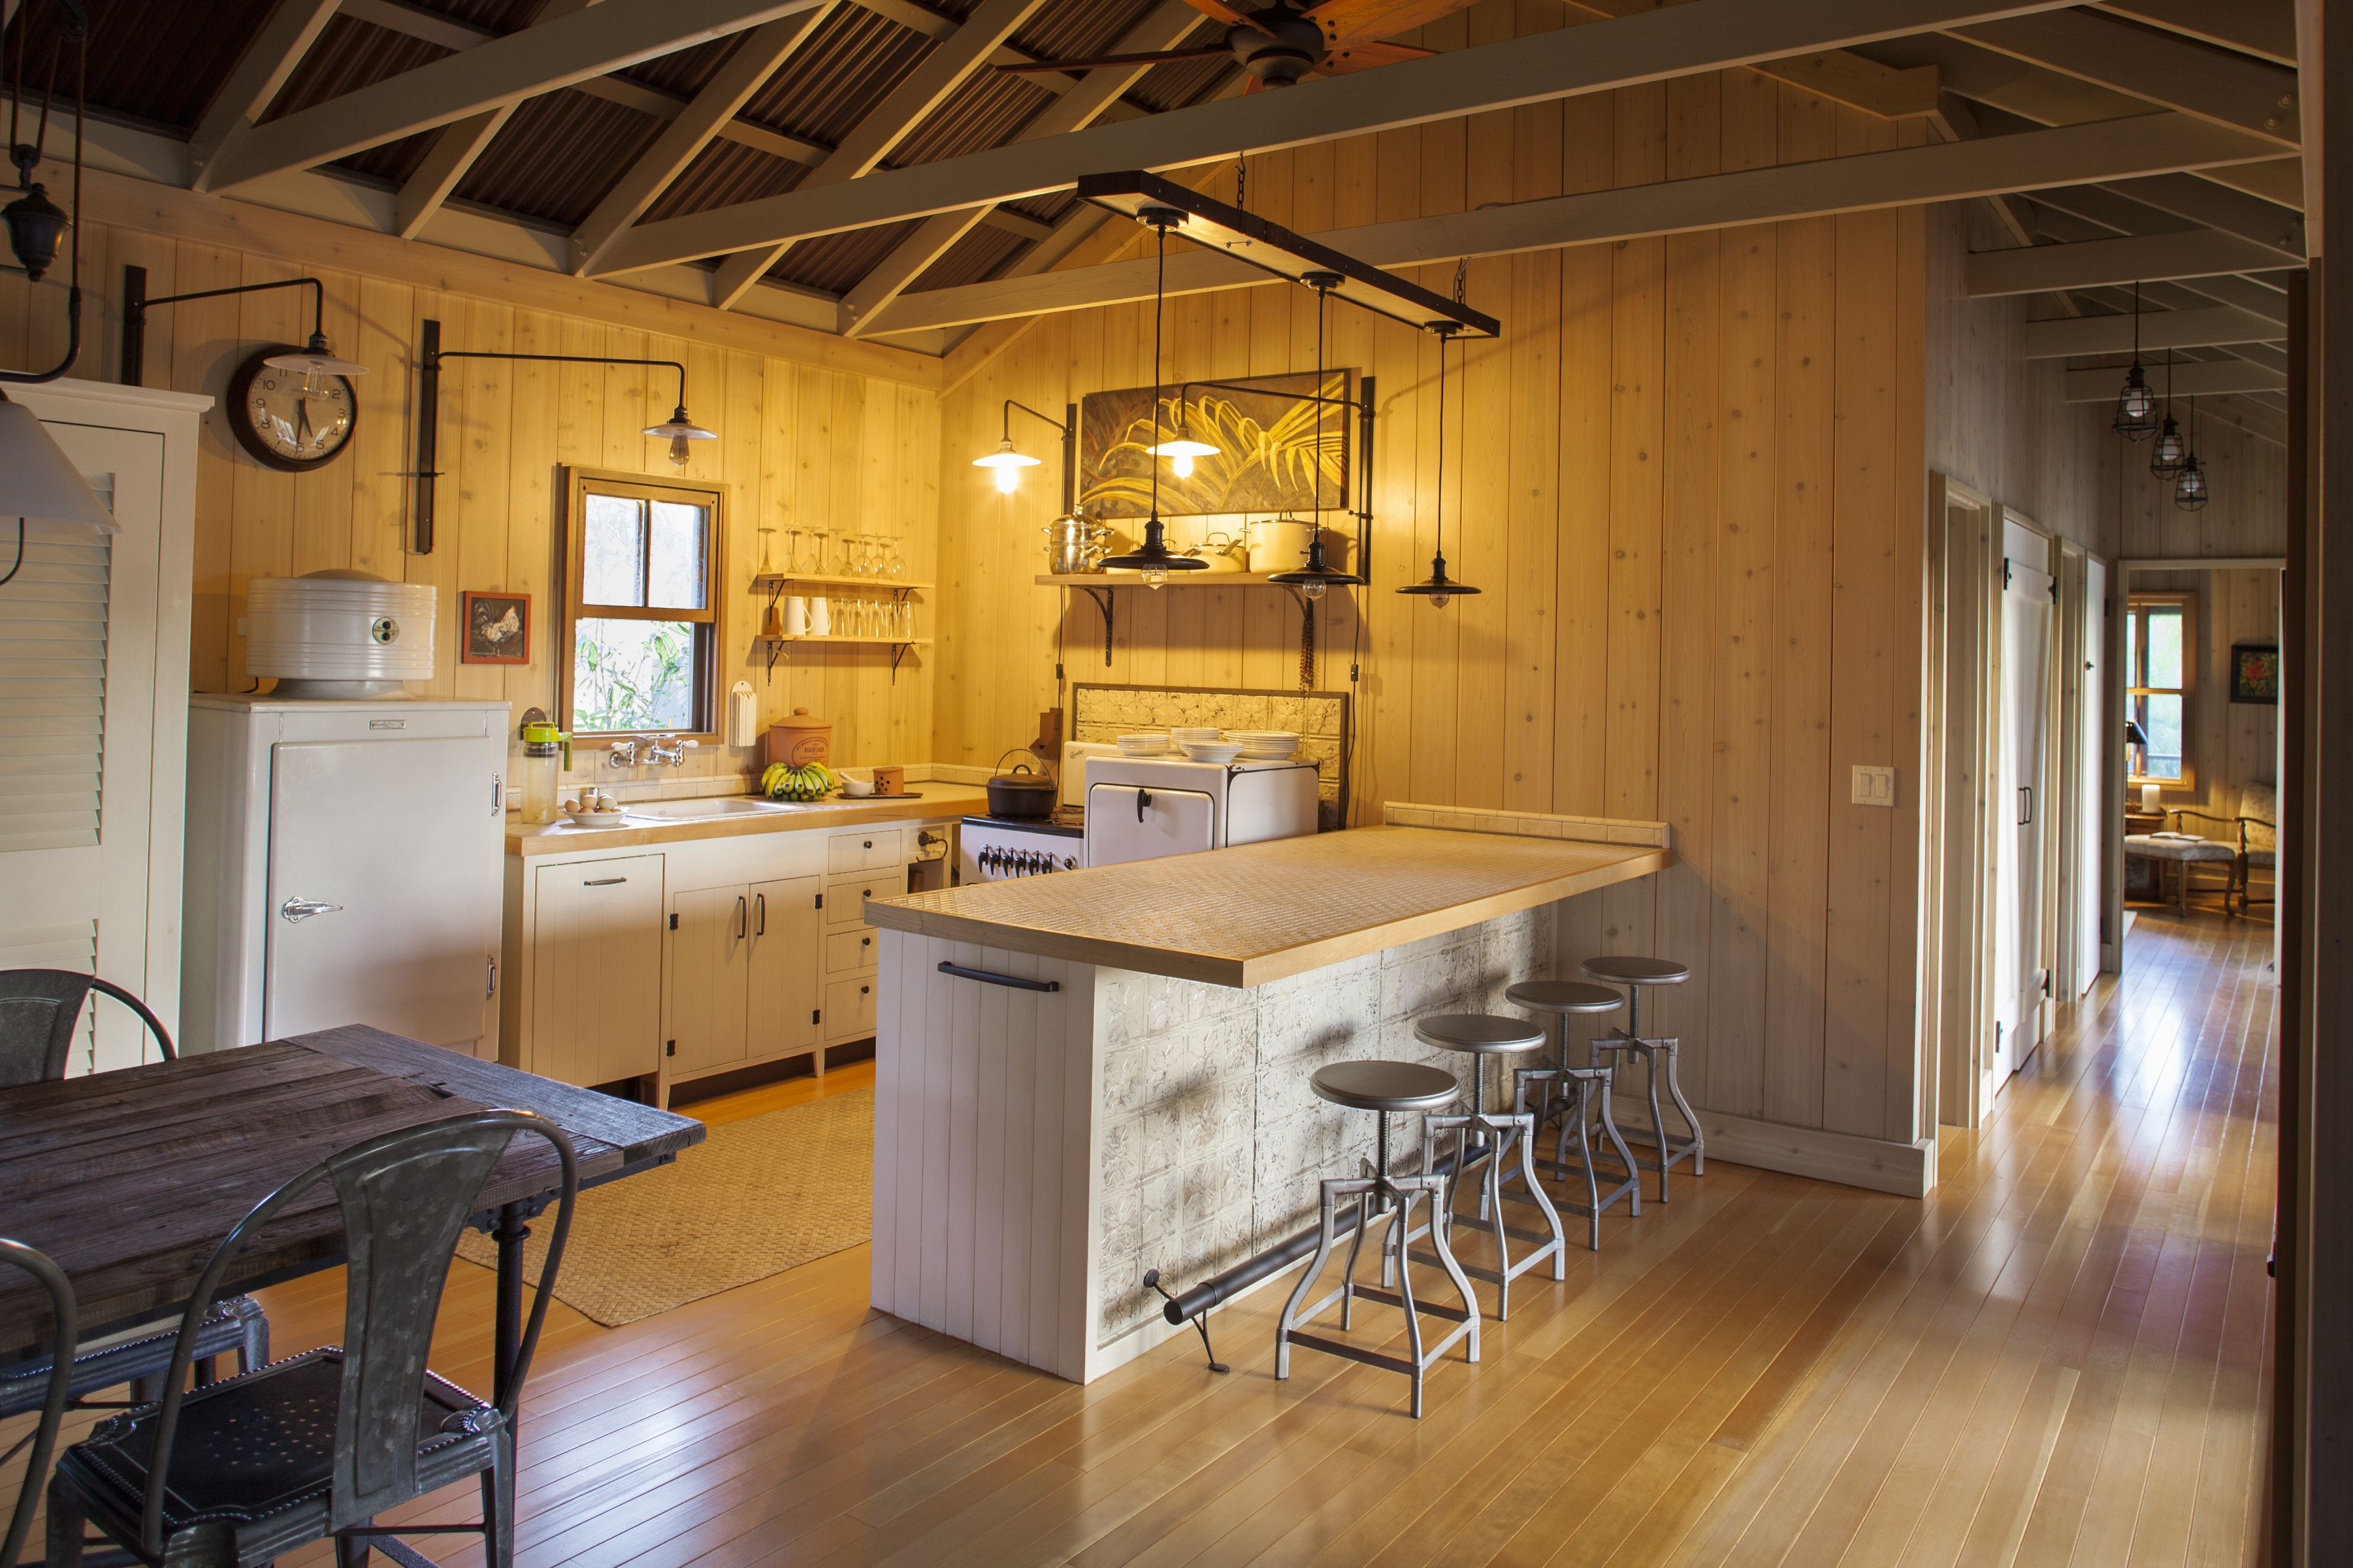 hardwood flooring options pros cons of gorgeous kitchens with wooden flooring inside kitchen wood floor and open beam ceiling 583805041 compassionate eye found 56a4a1663df78cf772835369